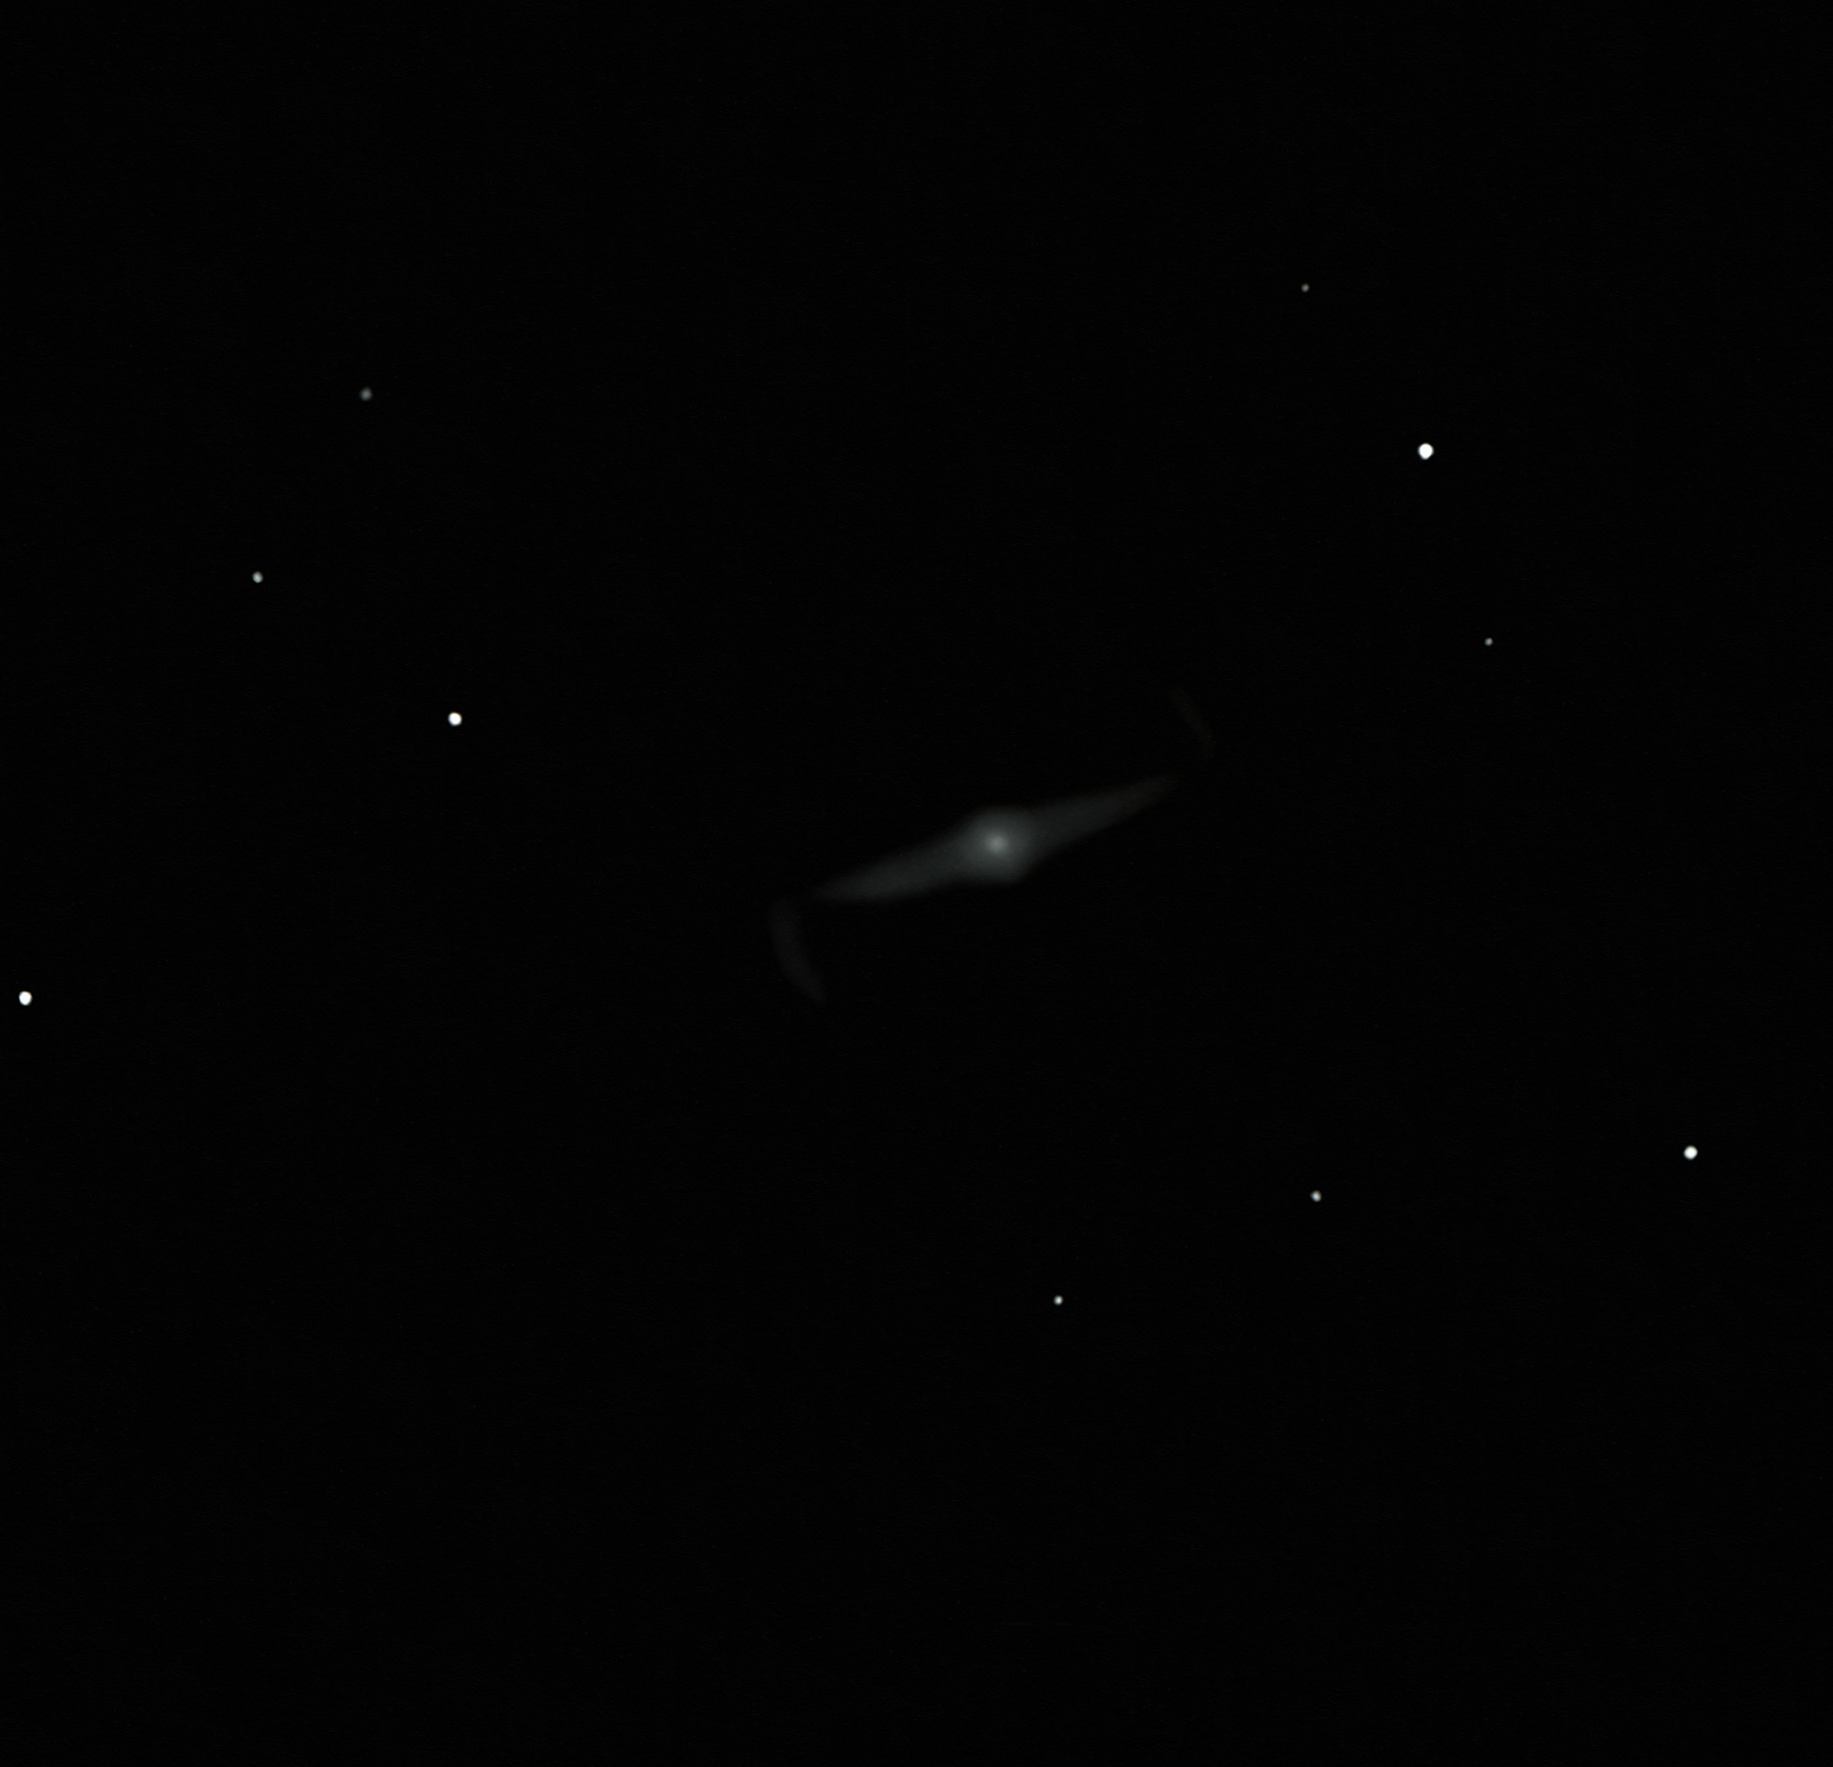 ngc1300-T381-md2.png